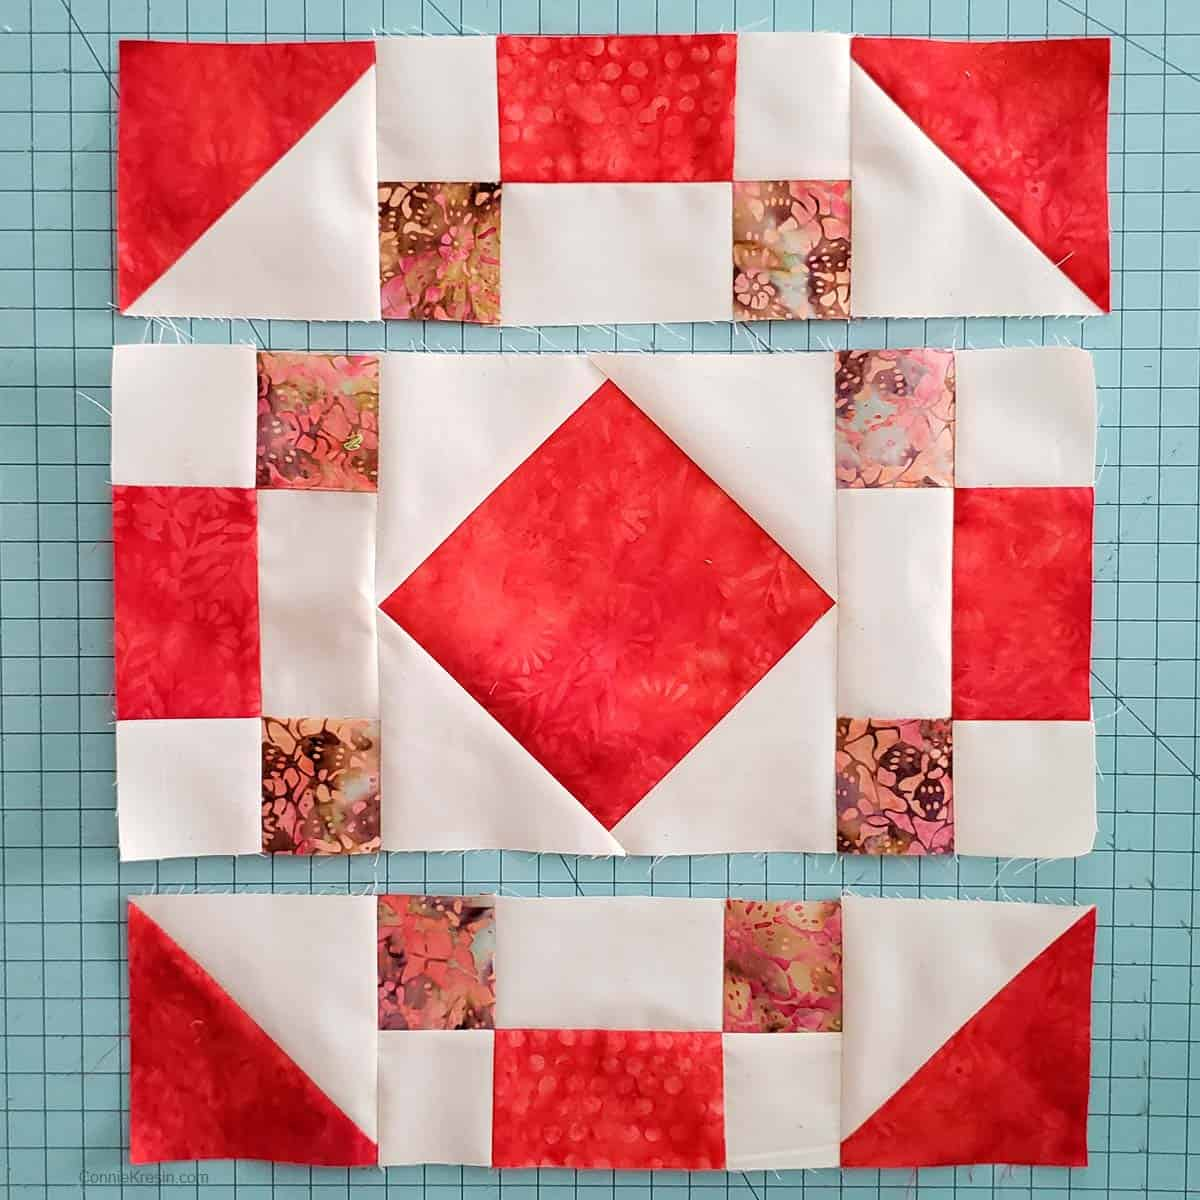 Sew the quilt block rows together